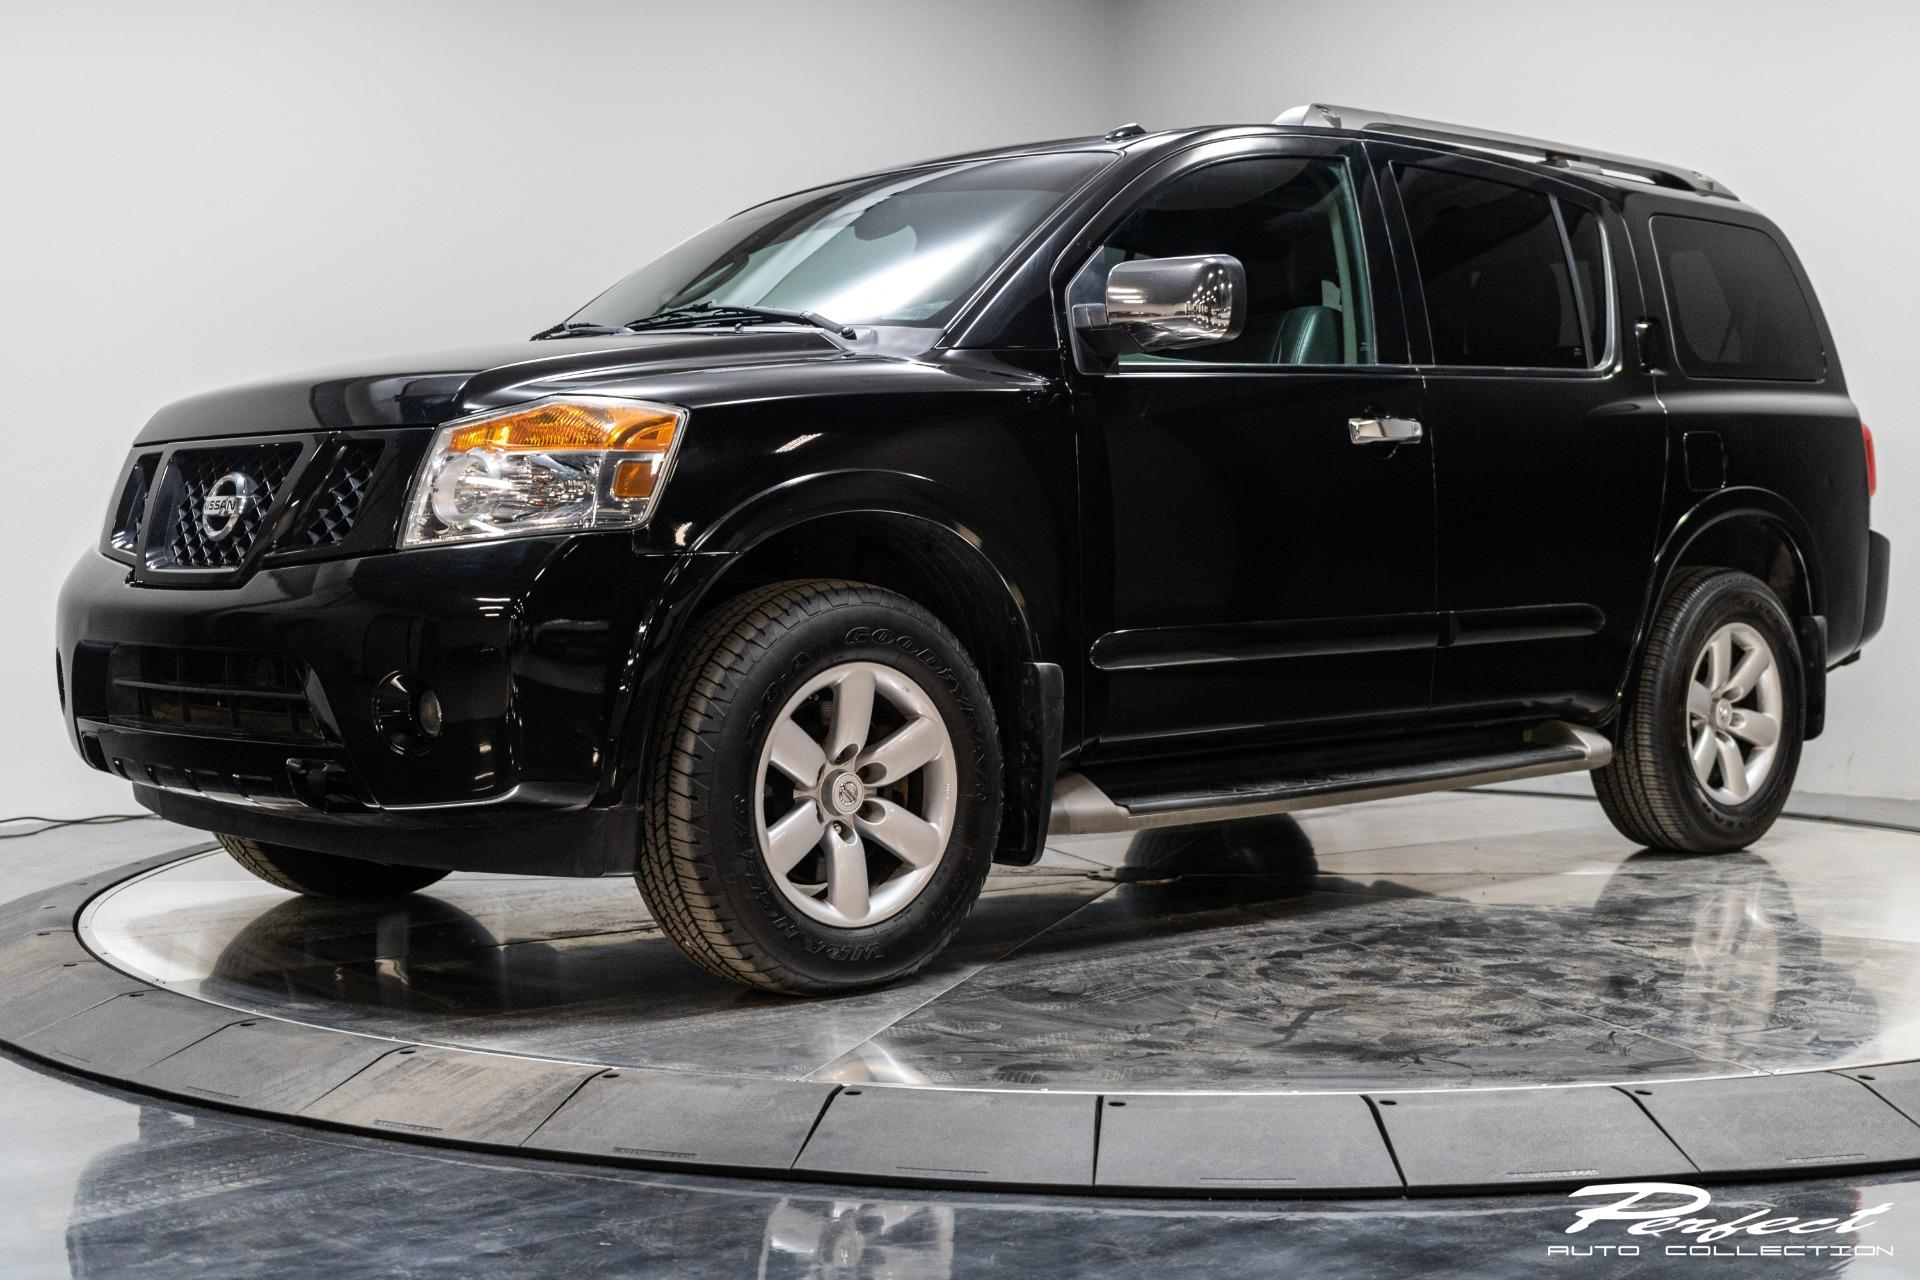 Used 2012 Nissan Armada Platinum for sale Sold at Perfect Auto Collection in Akron OH 44310 1